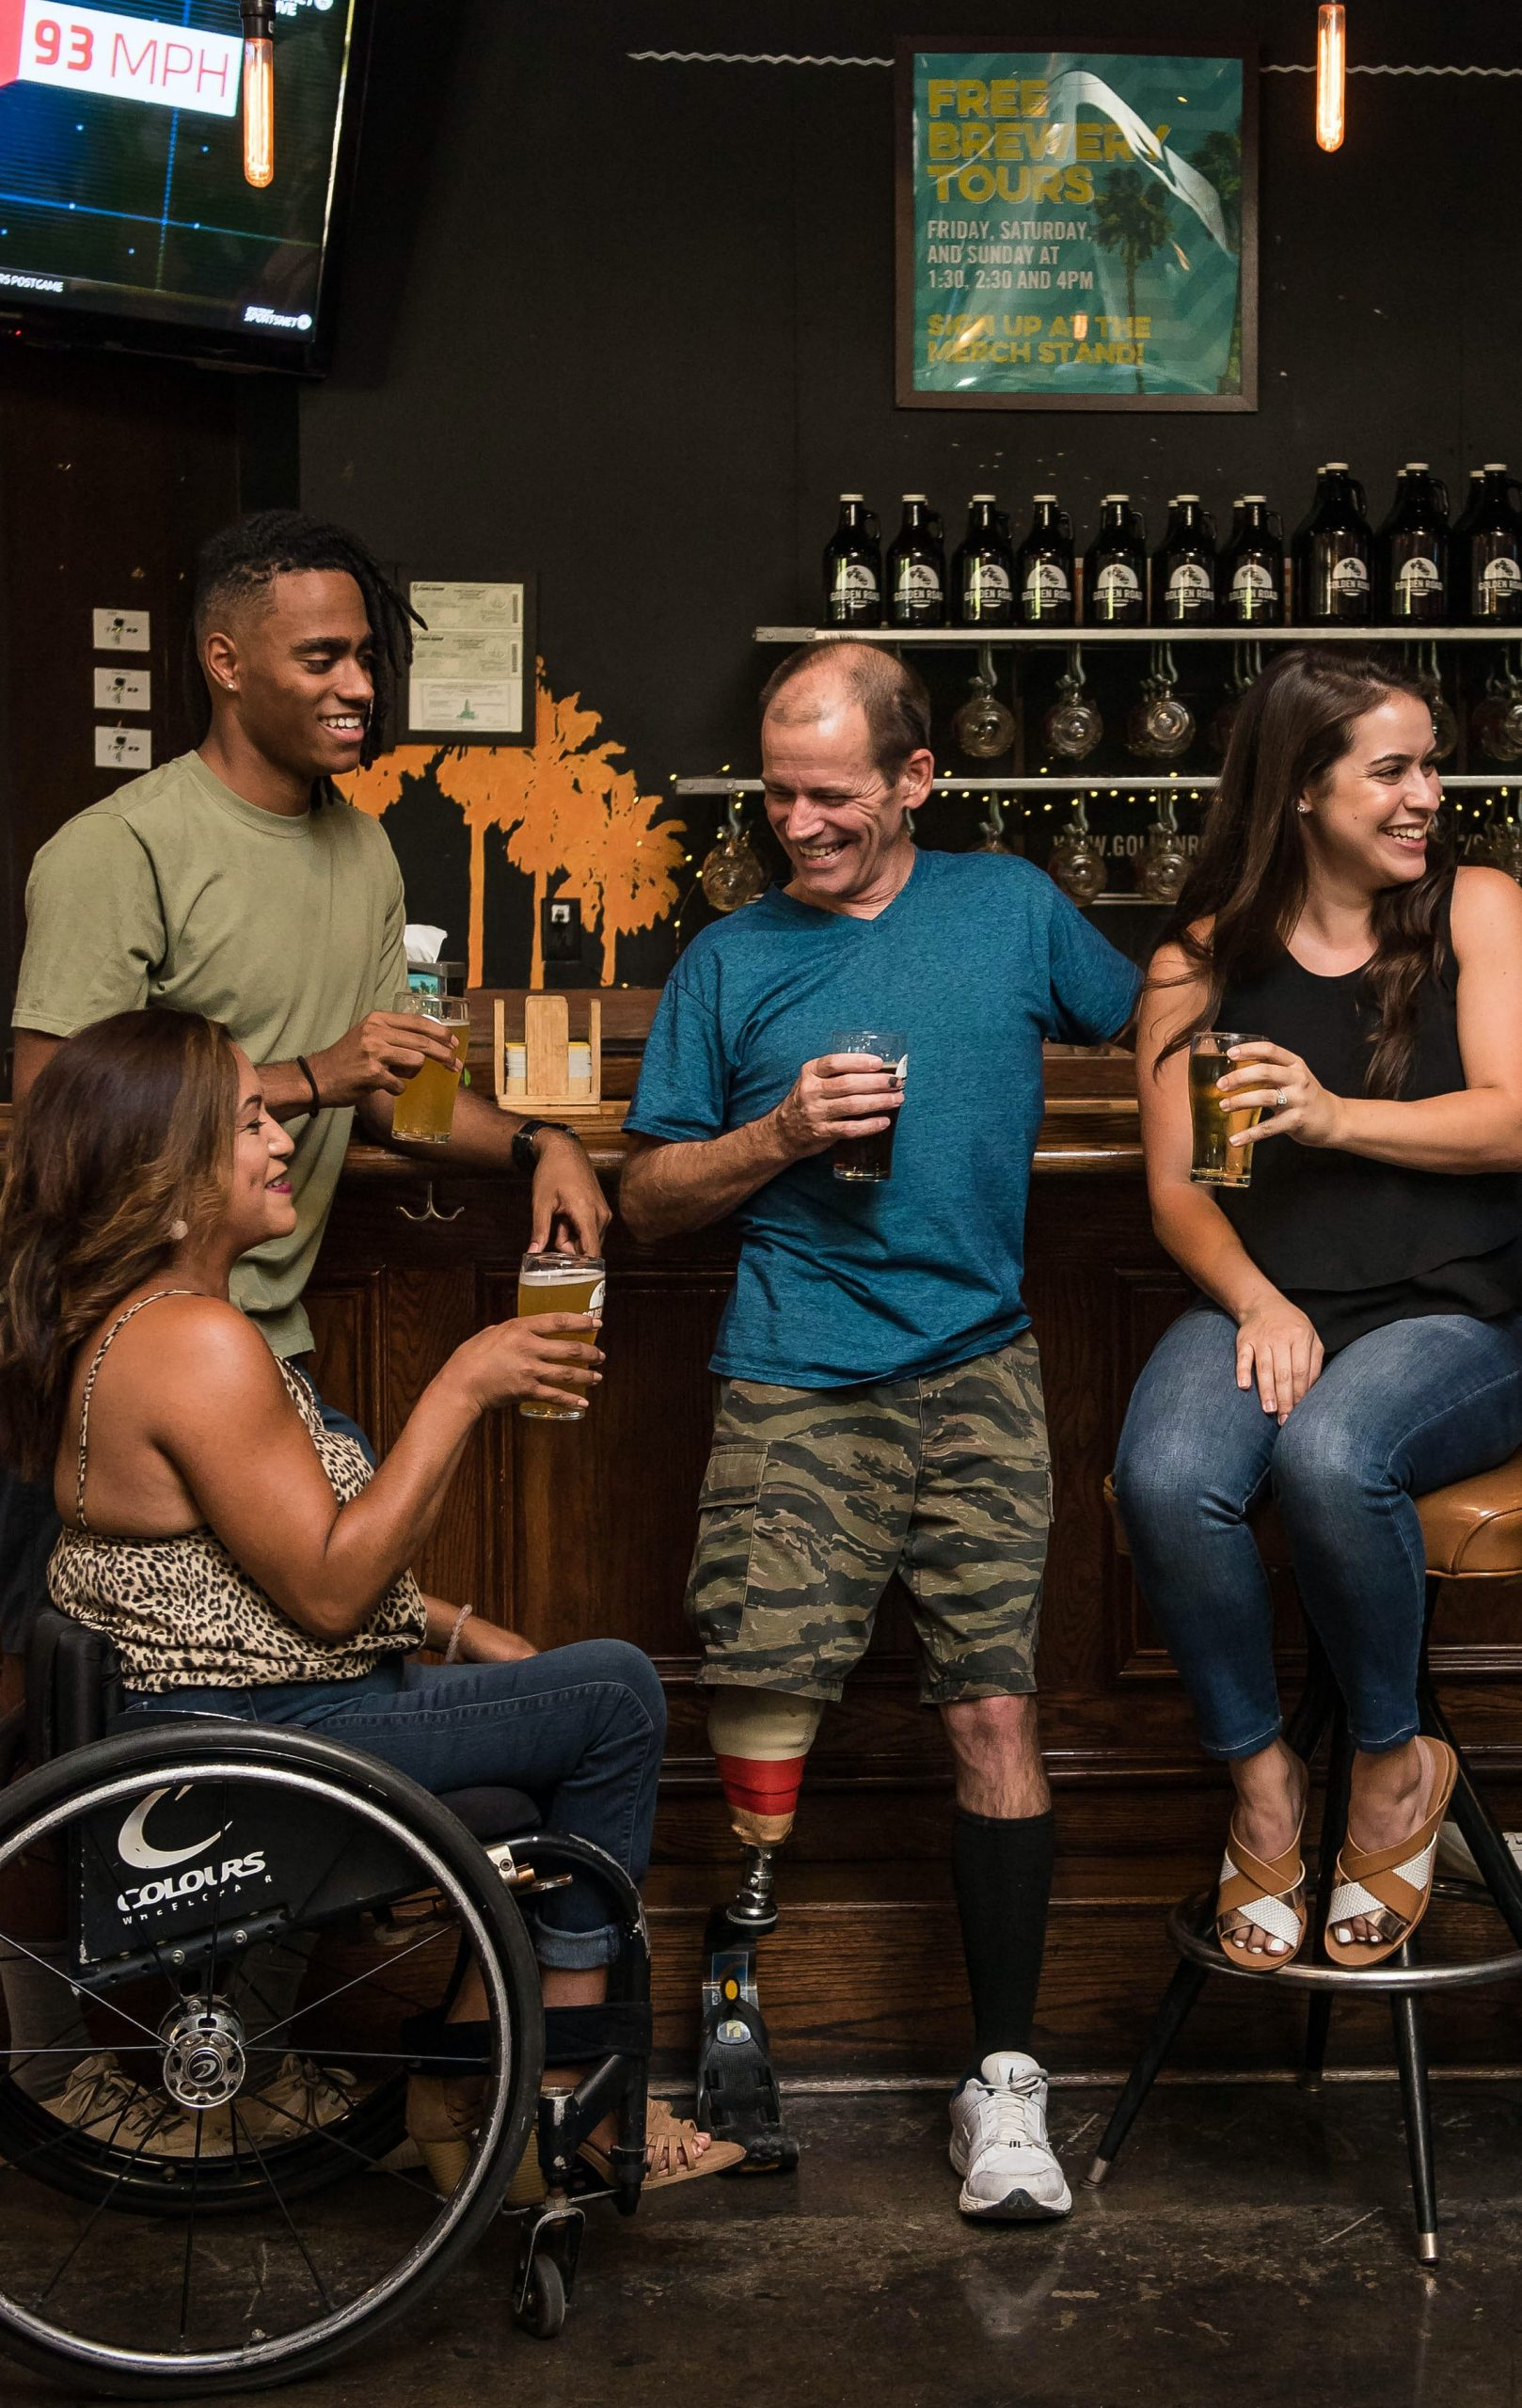 Four people talking at a bar, an African American man standing, a hispanic woman in a wheelchair, a man with an artificial leg leaning against the bar, and a woman sitting on a stool